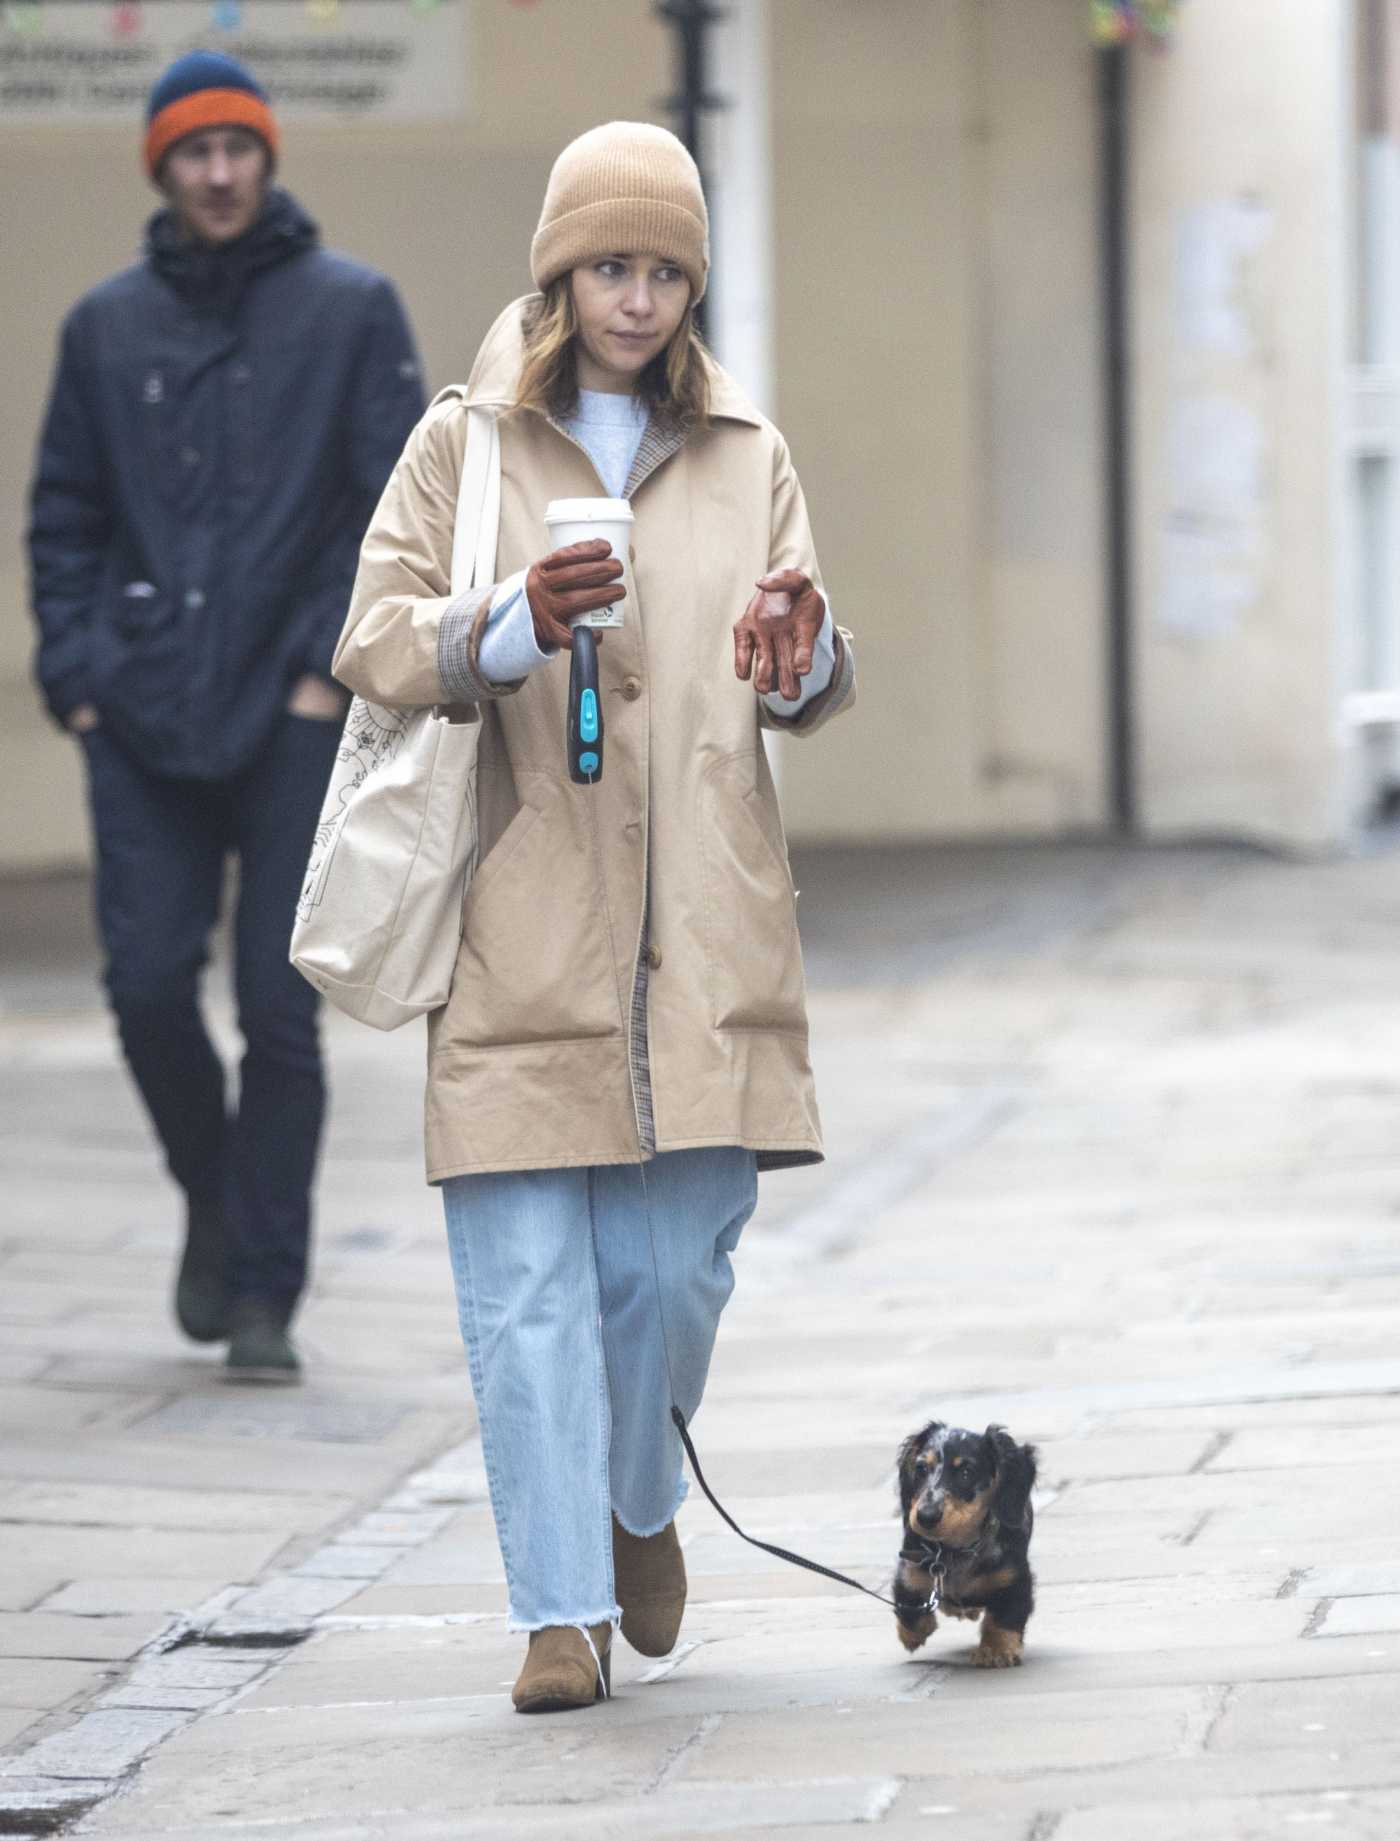 Emilia Clarke in a Beige Trench Coat Walks Her Dog Out in London 03/20/2020